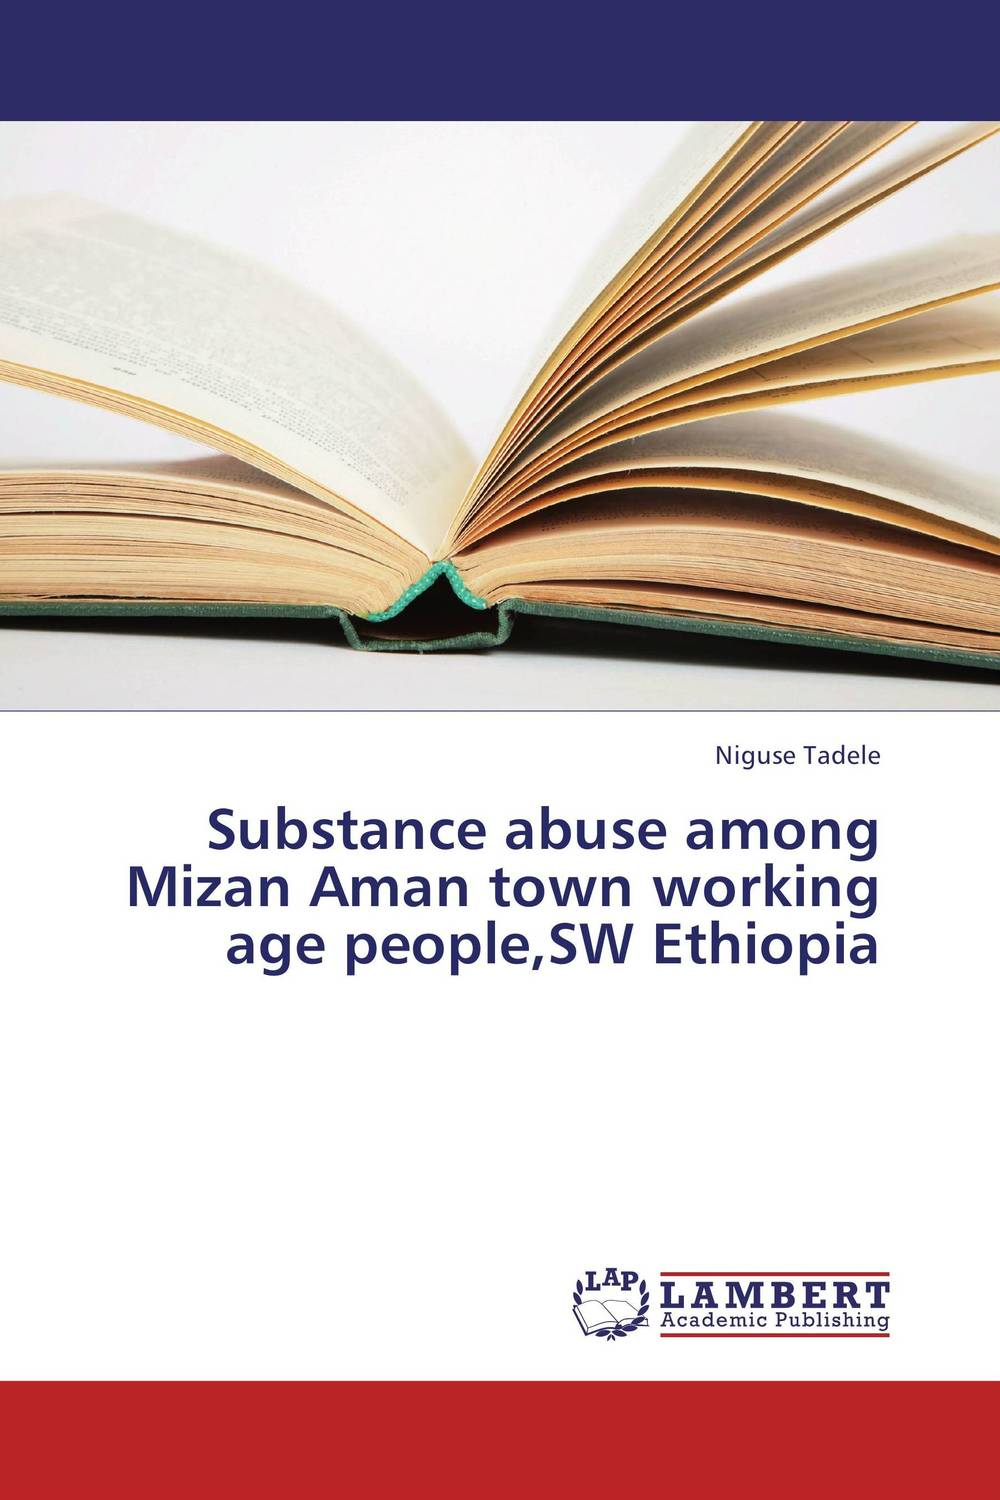 Substance abuse among Mizan Aman town working age people,SW Ethiopia highsmith p found in the street